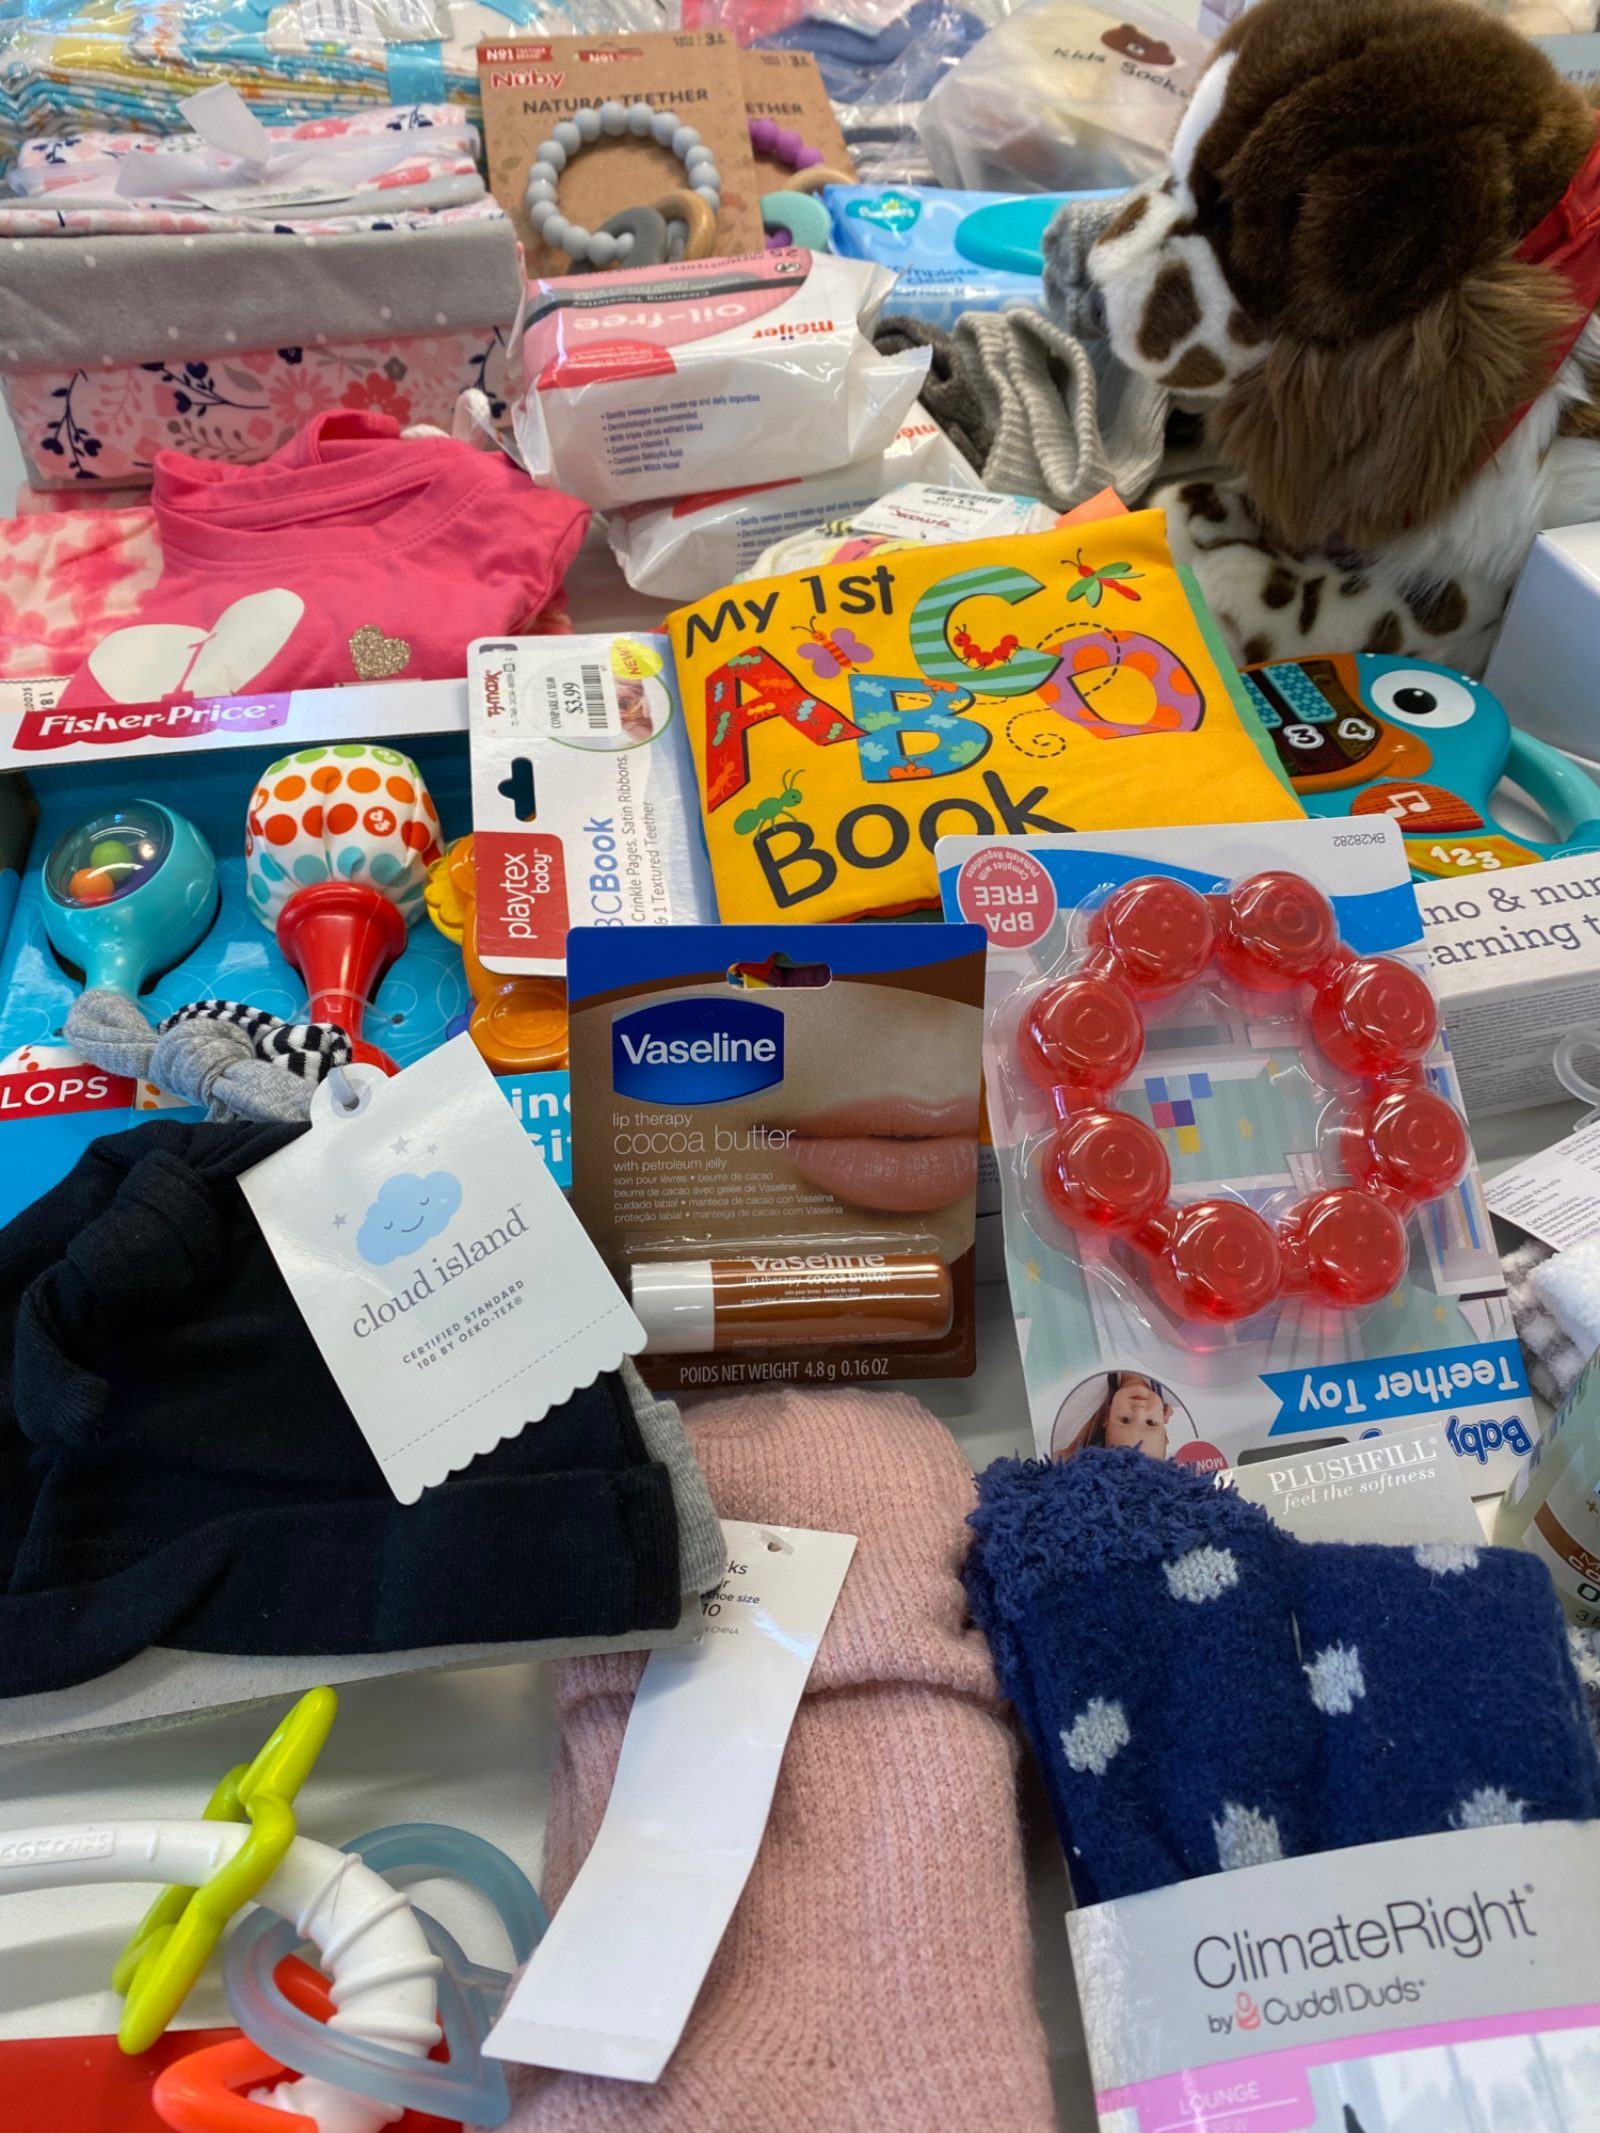 An image of a group of donated items including teethers, baby clothes, baby hats, and baby toys.